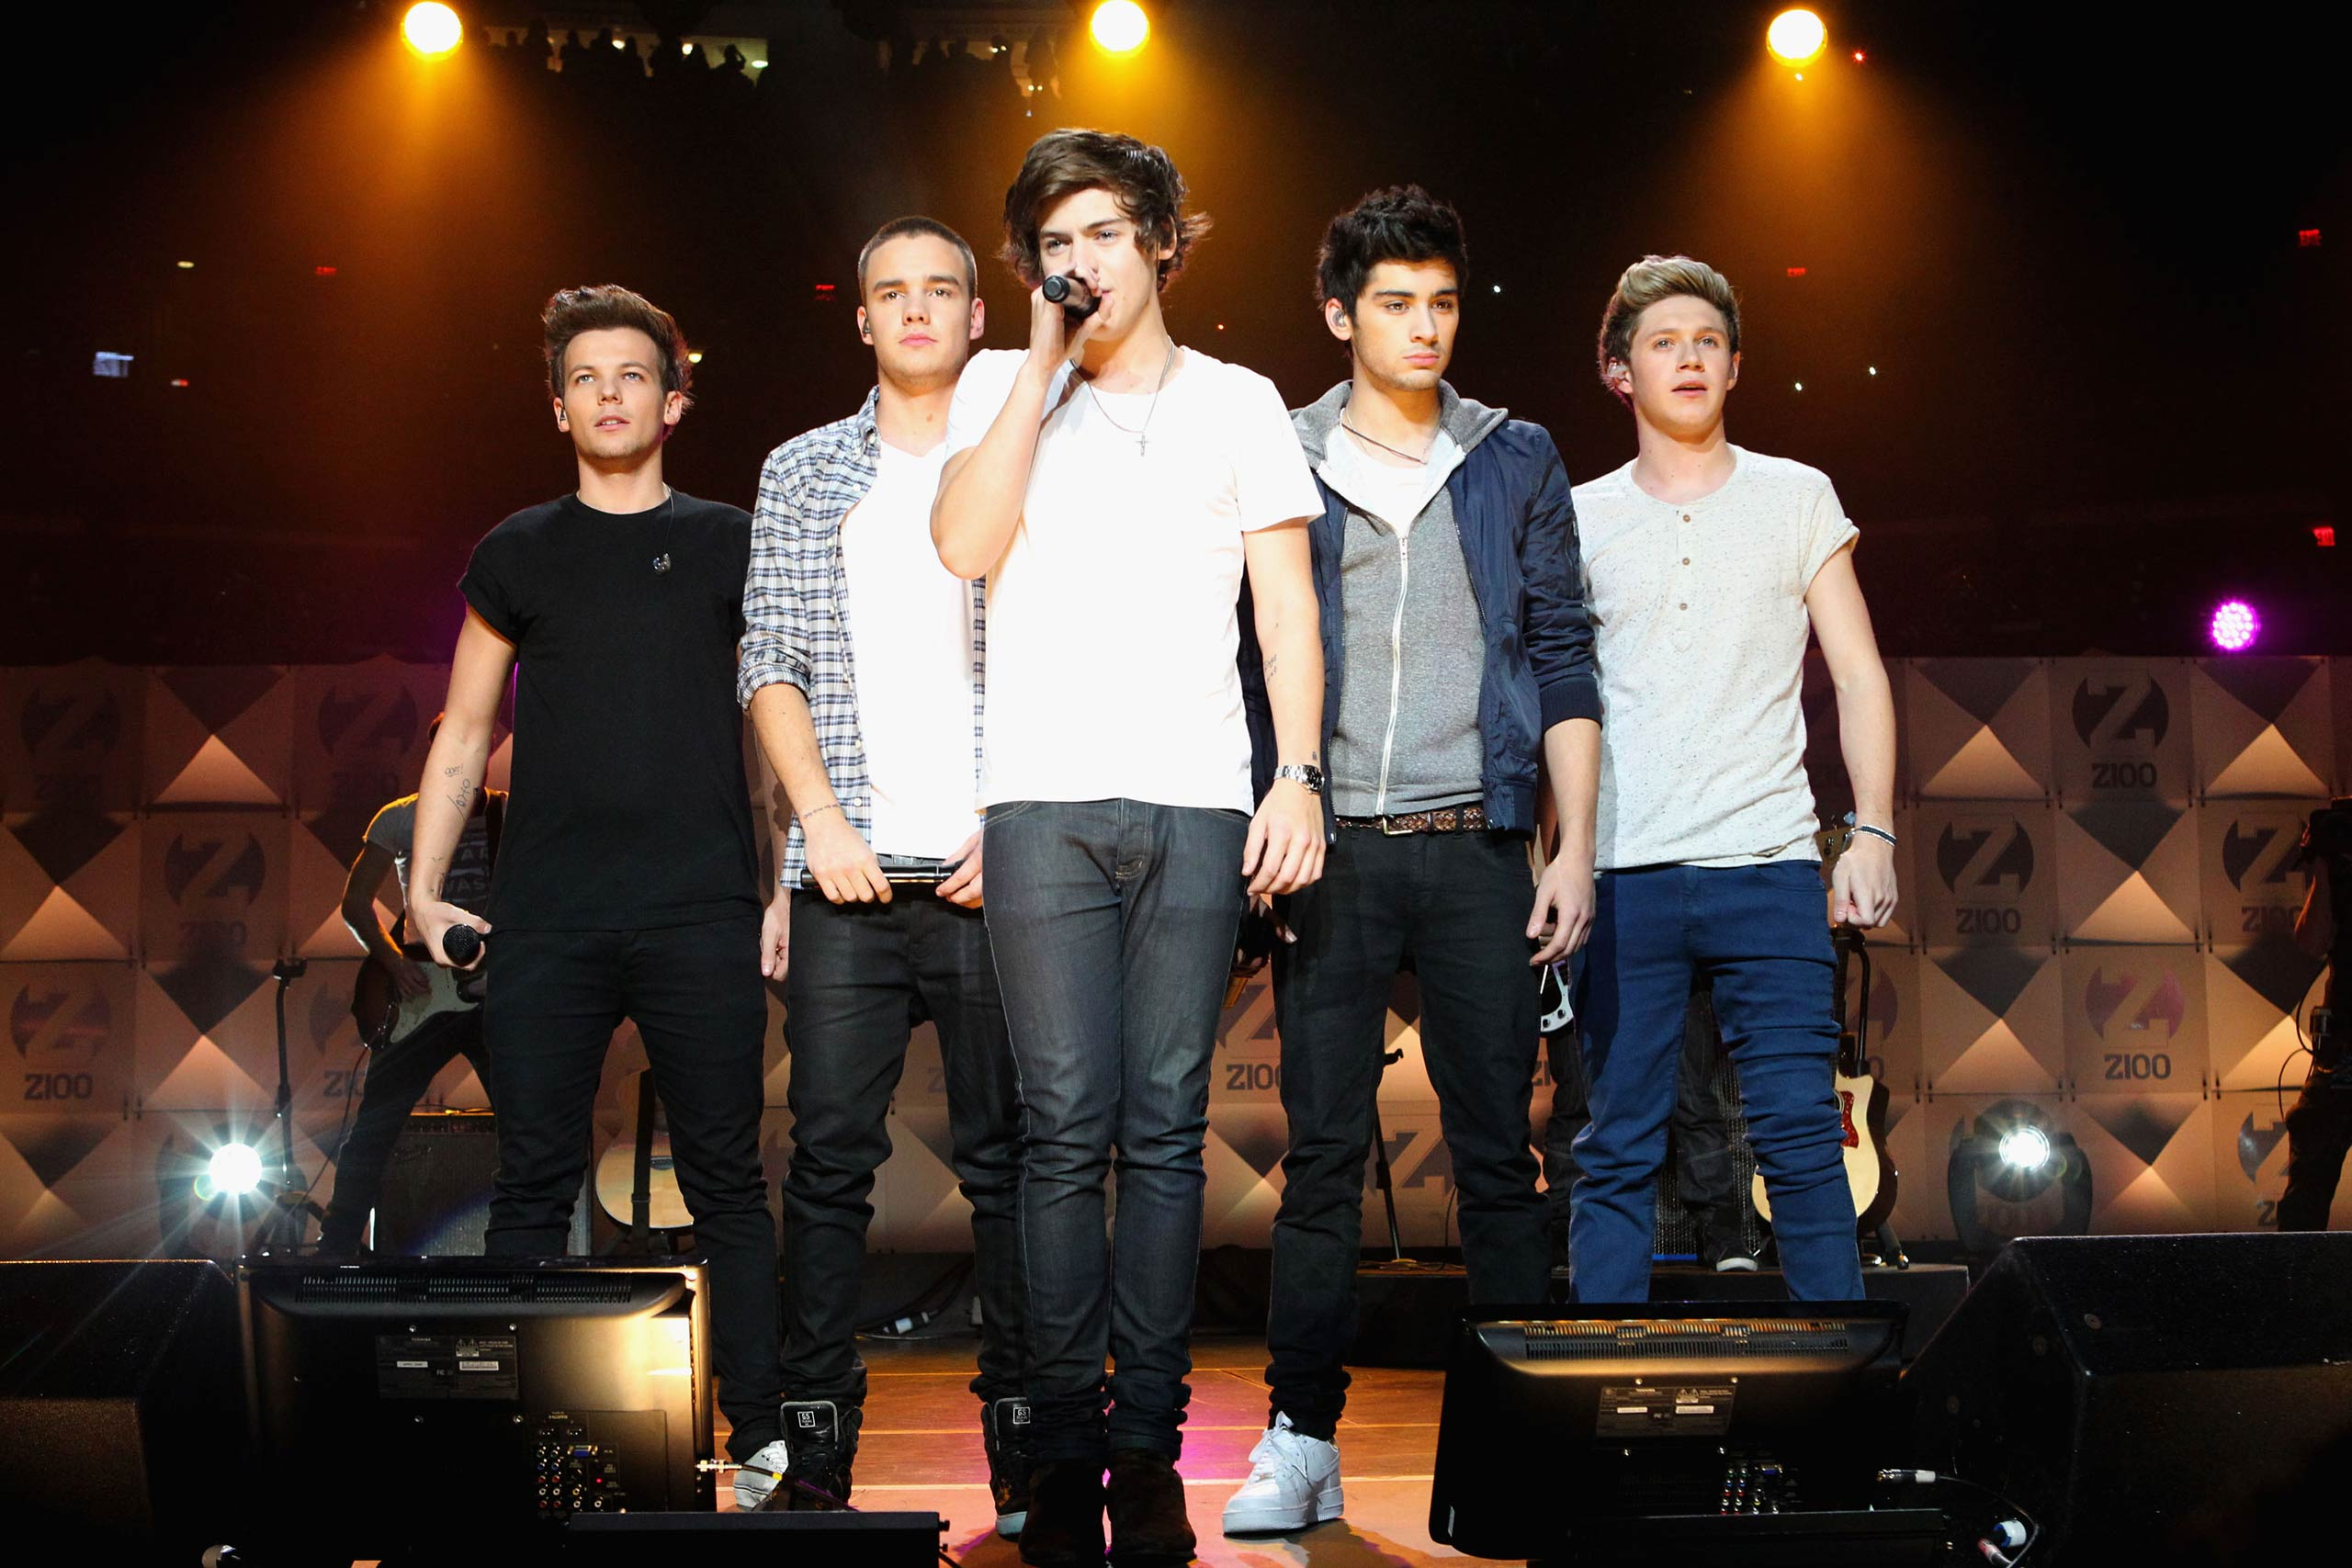 One Direction performs onstage during Z100's Jingle Ball 2012 at Madison Square Garden on in New York City in 2012.